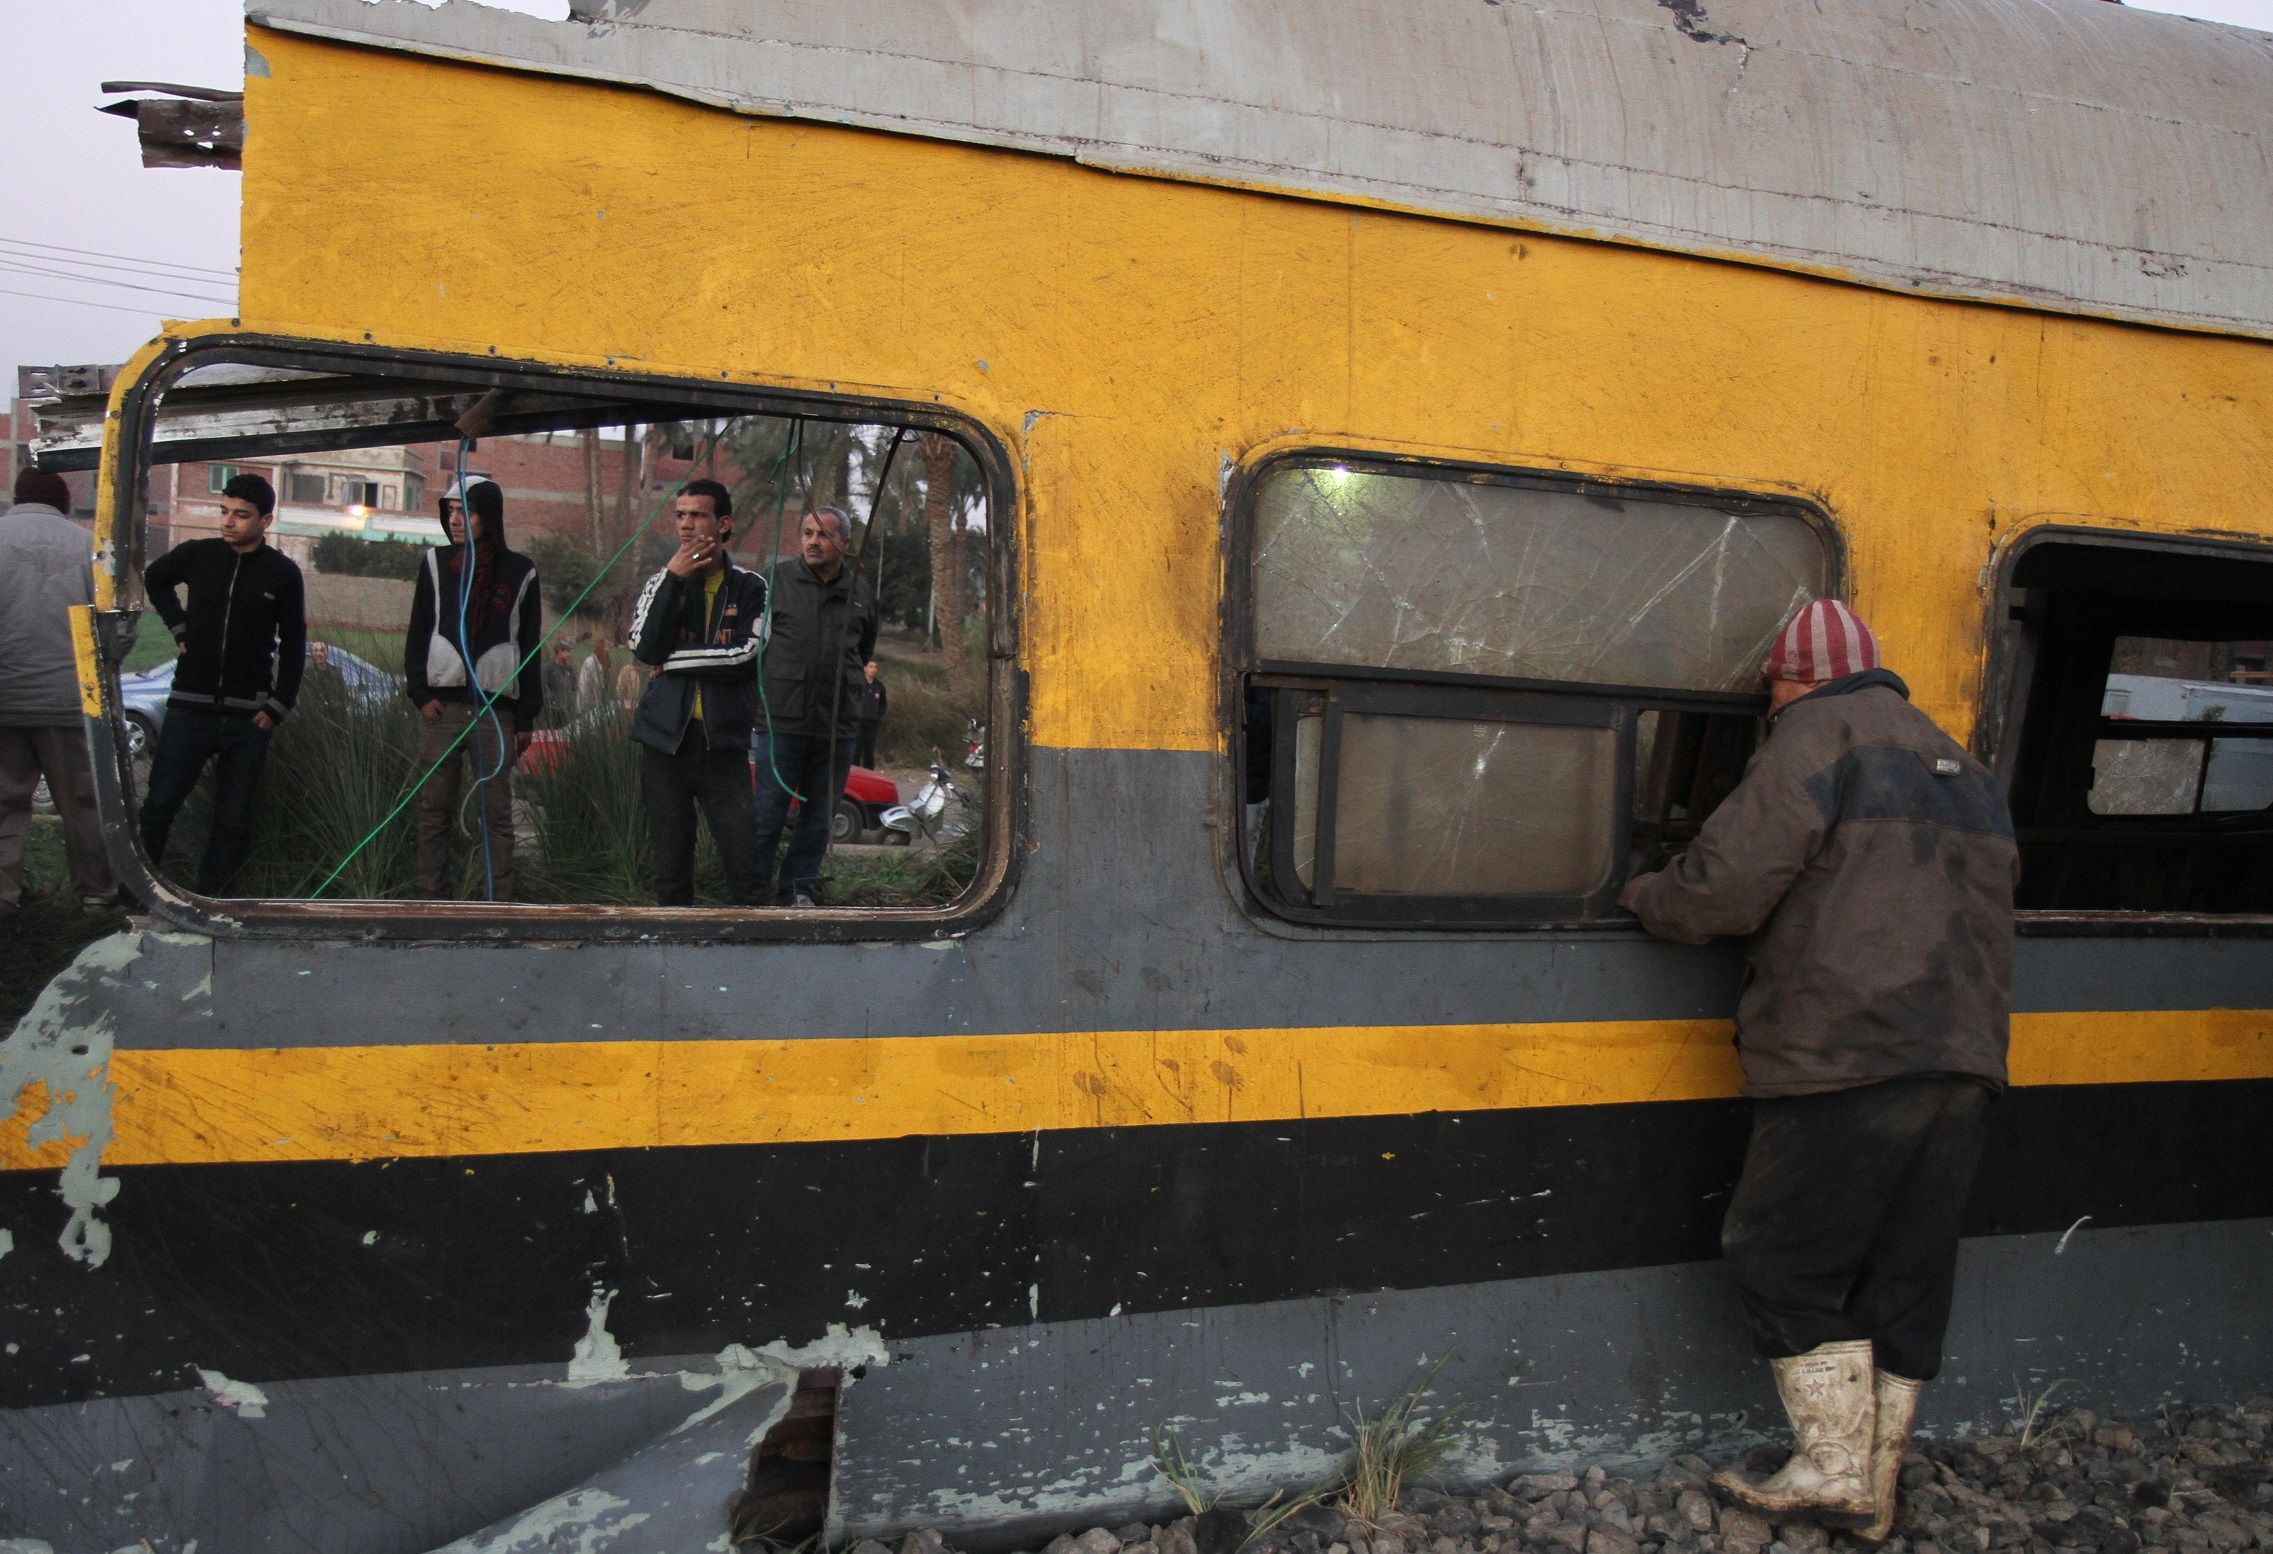 20 killed in Egypt train collision